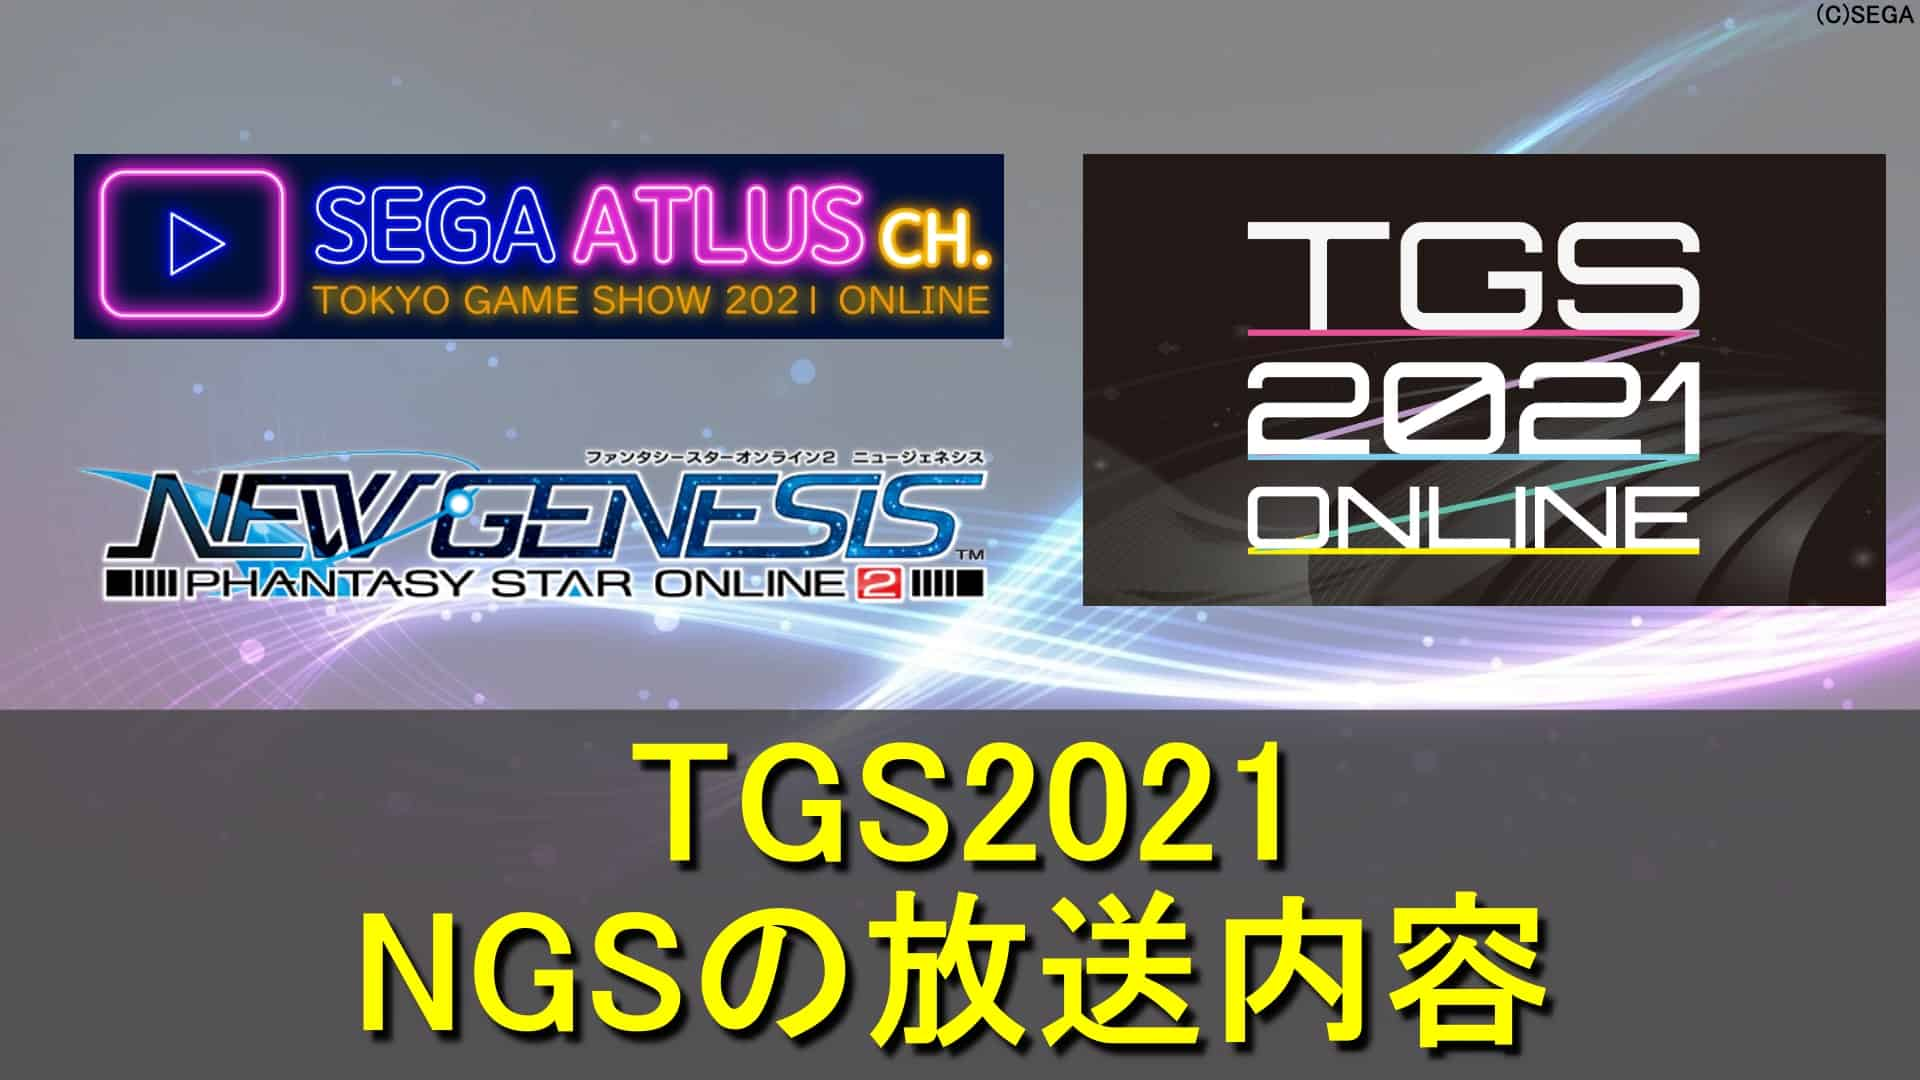 【PSO2NGS】TGS2021のセガ・ニュージェネシス関連の放送内容